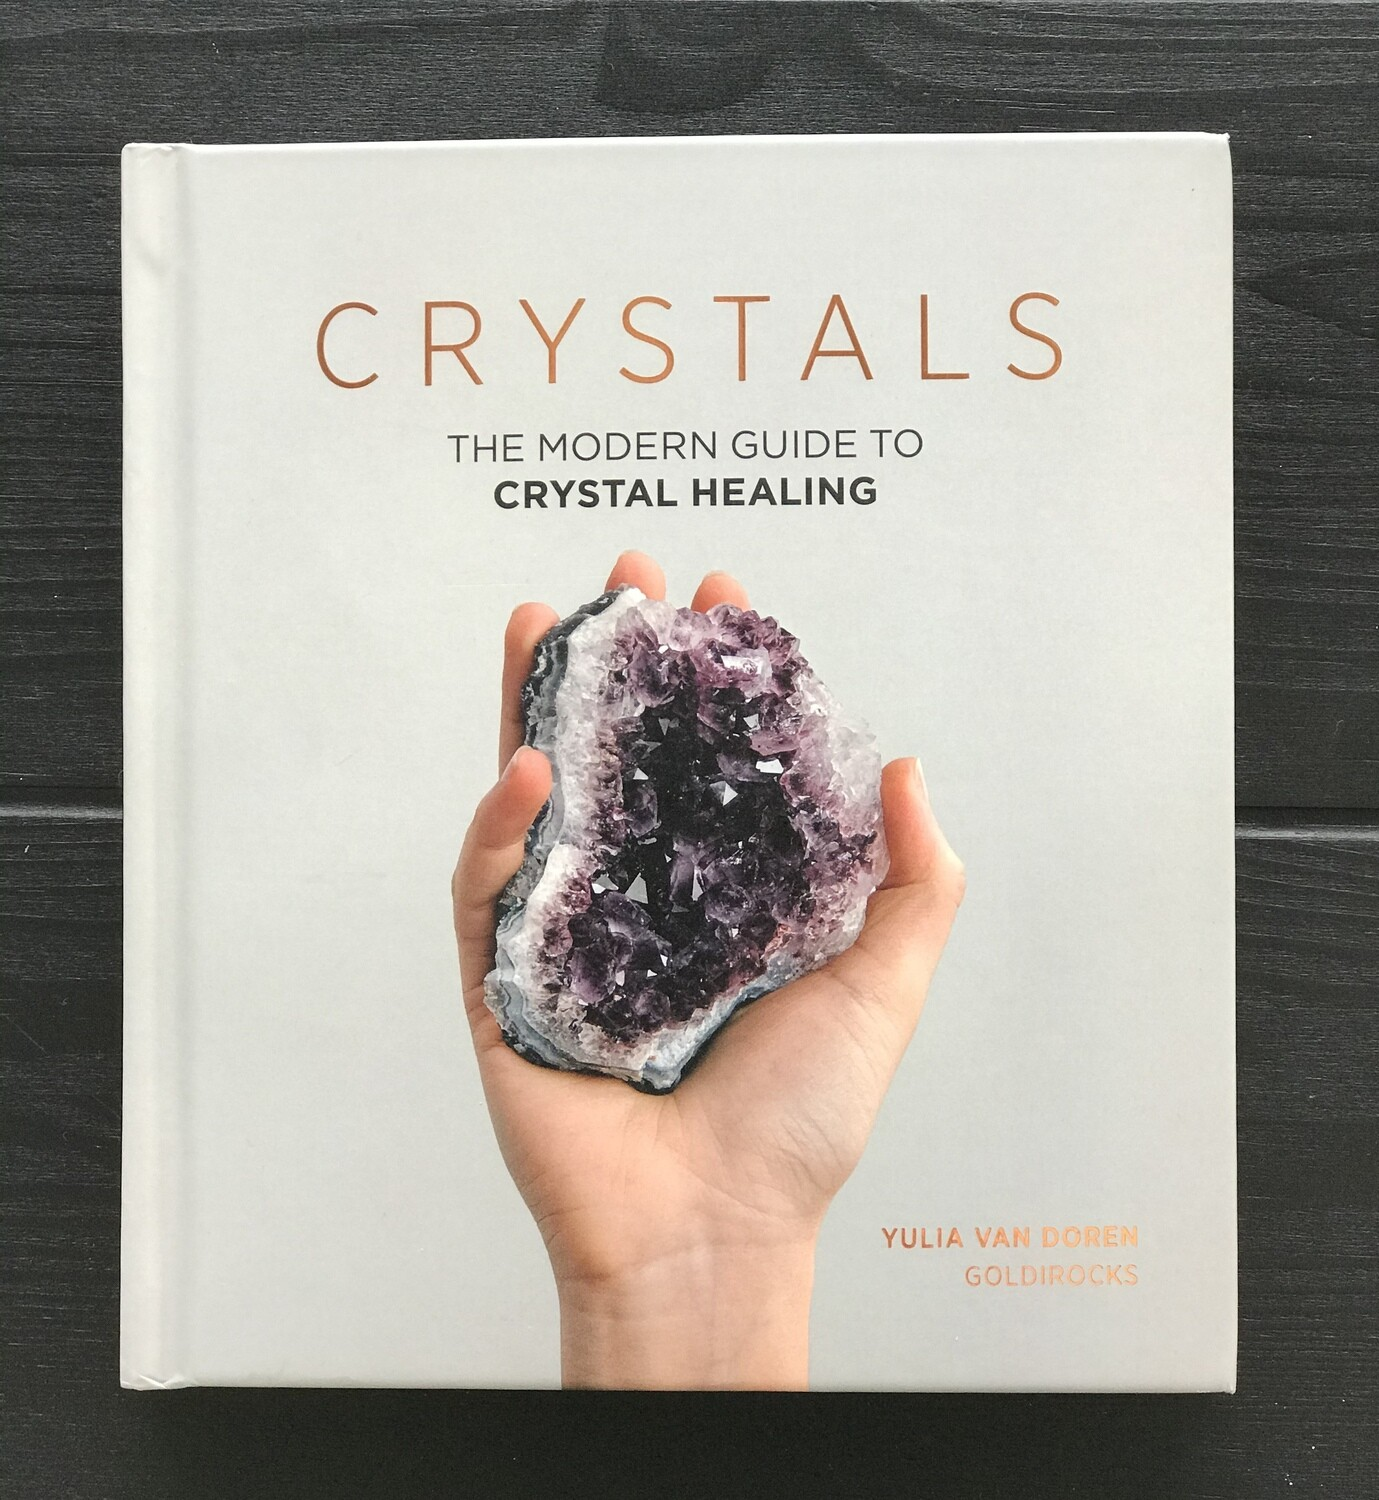 Crystals - The Modern Guide to Crystal Healing (Hardcover)